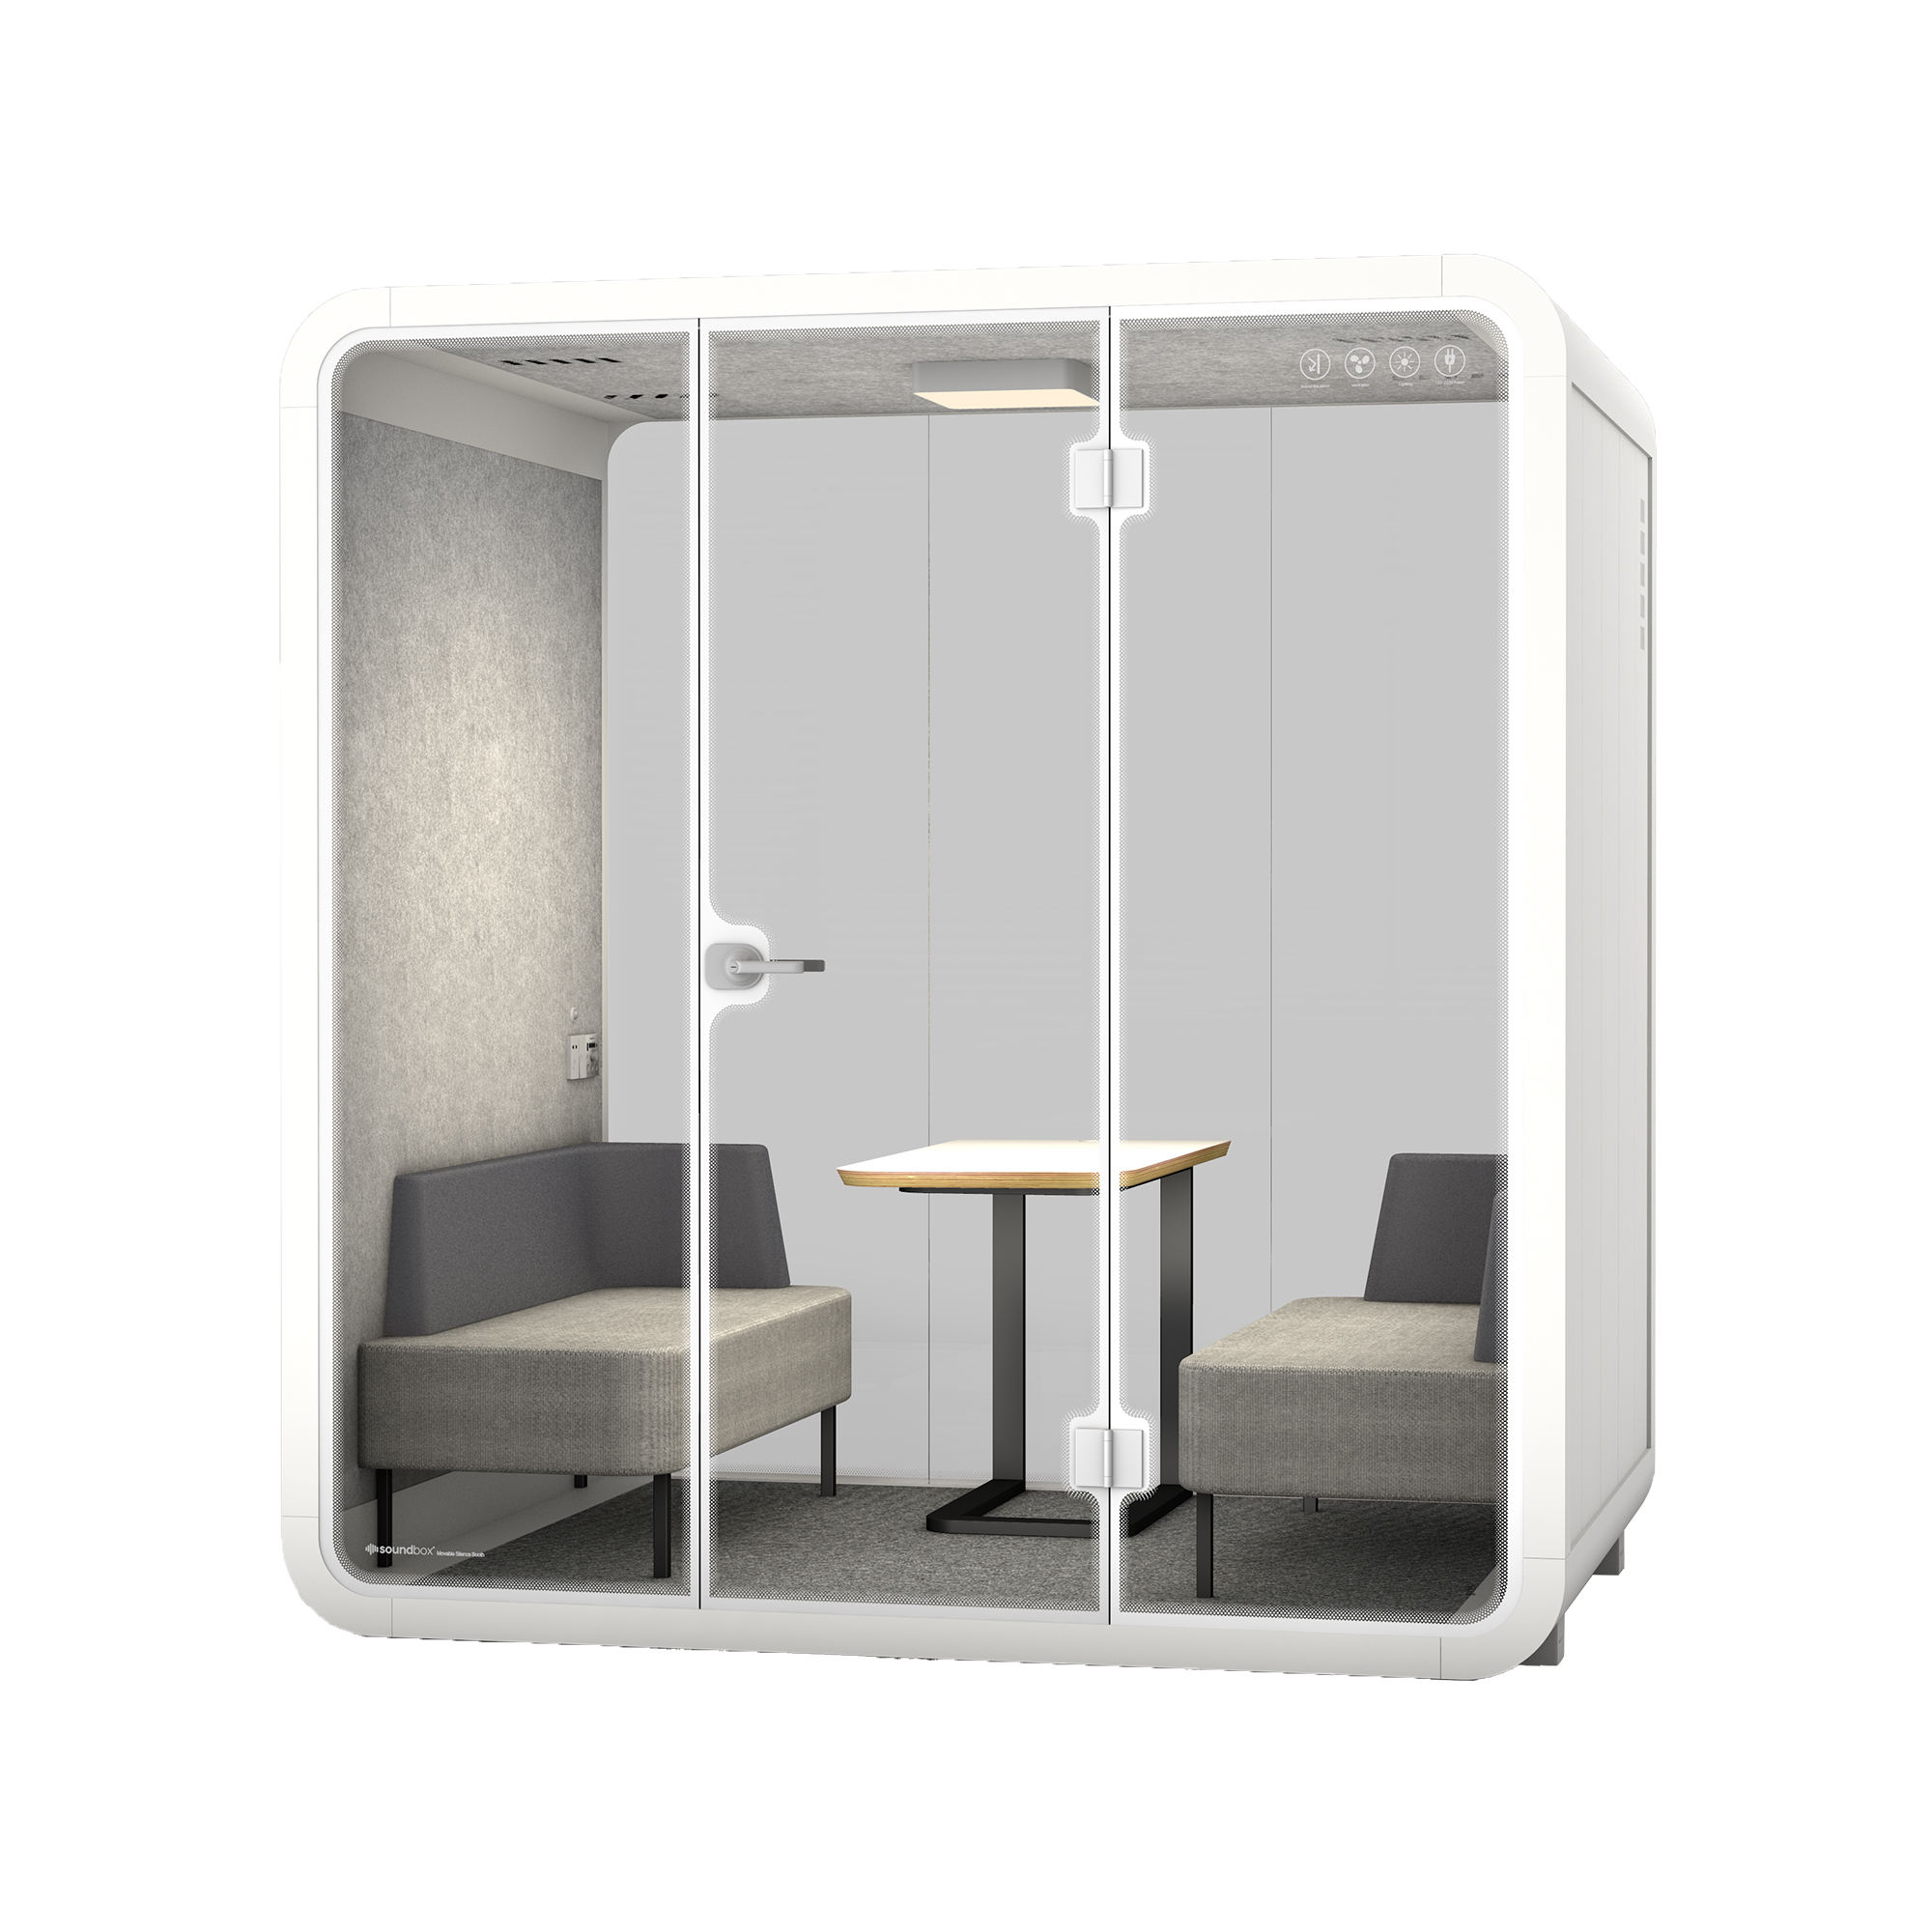 High quality office privicy soundproof private 4 seater meeting pod